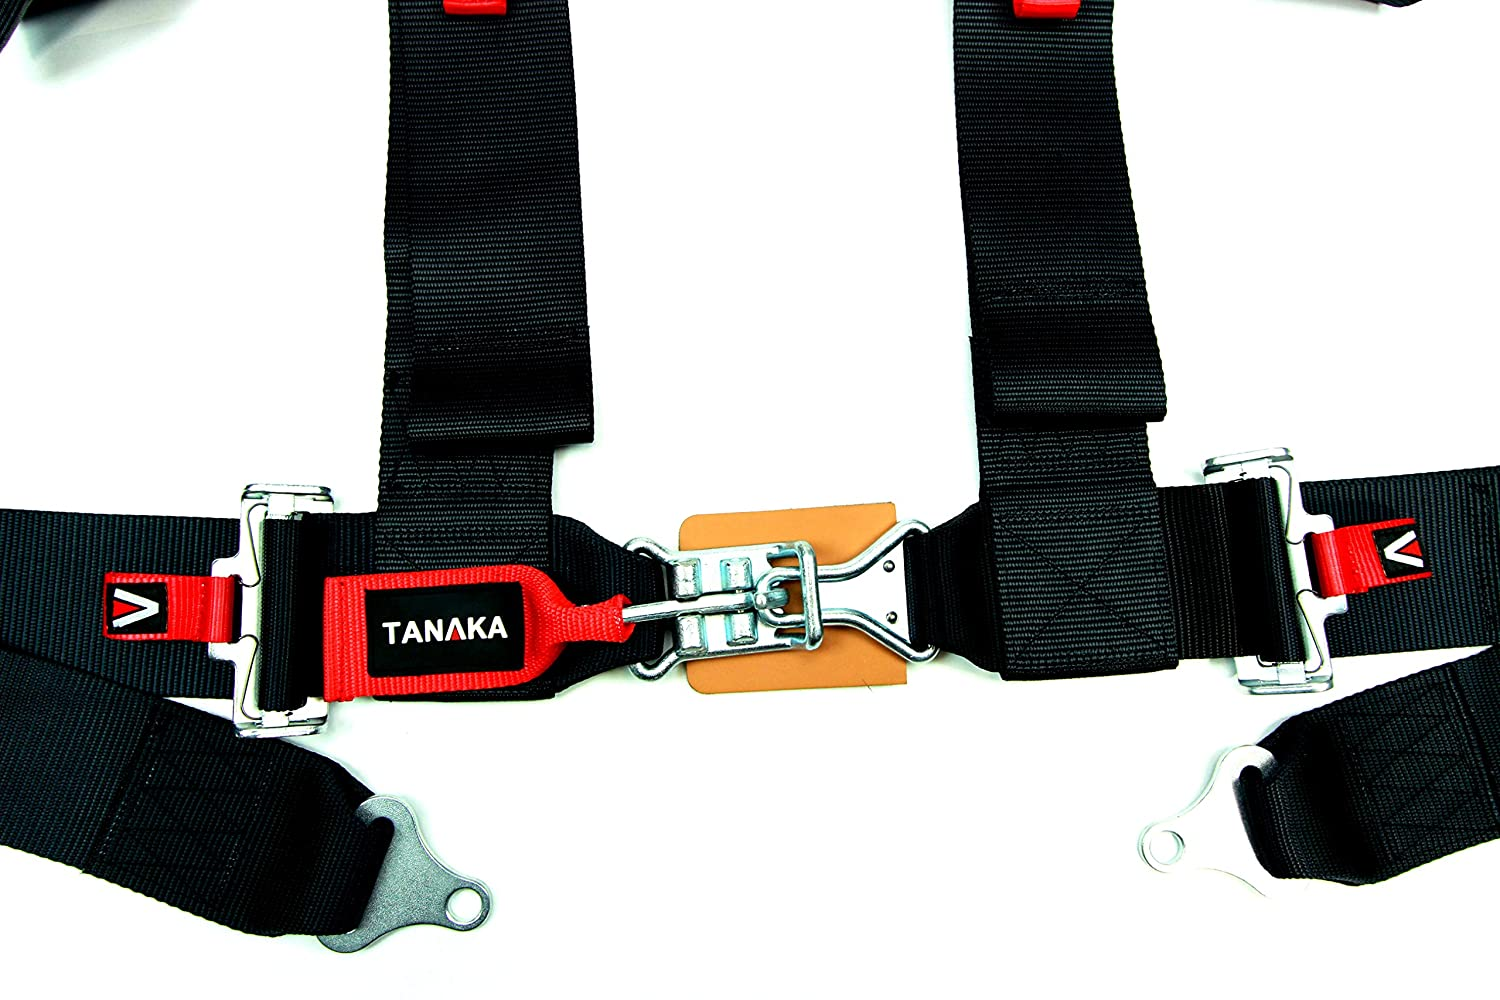 Black Tanaka Latch and Link 4 Point Safety Harness Set with Ultra Comfort Heavy Duty Shoulder Pads and Utility Pockets Ideal for UTV and Sand Sports PAIR